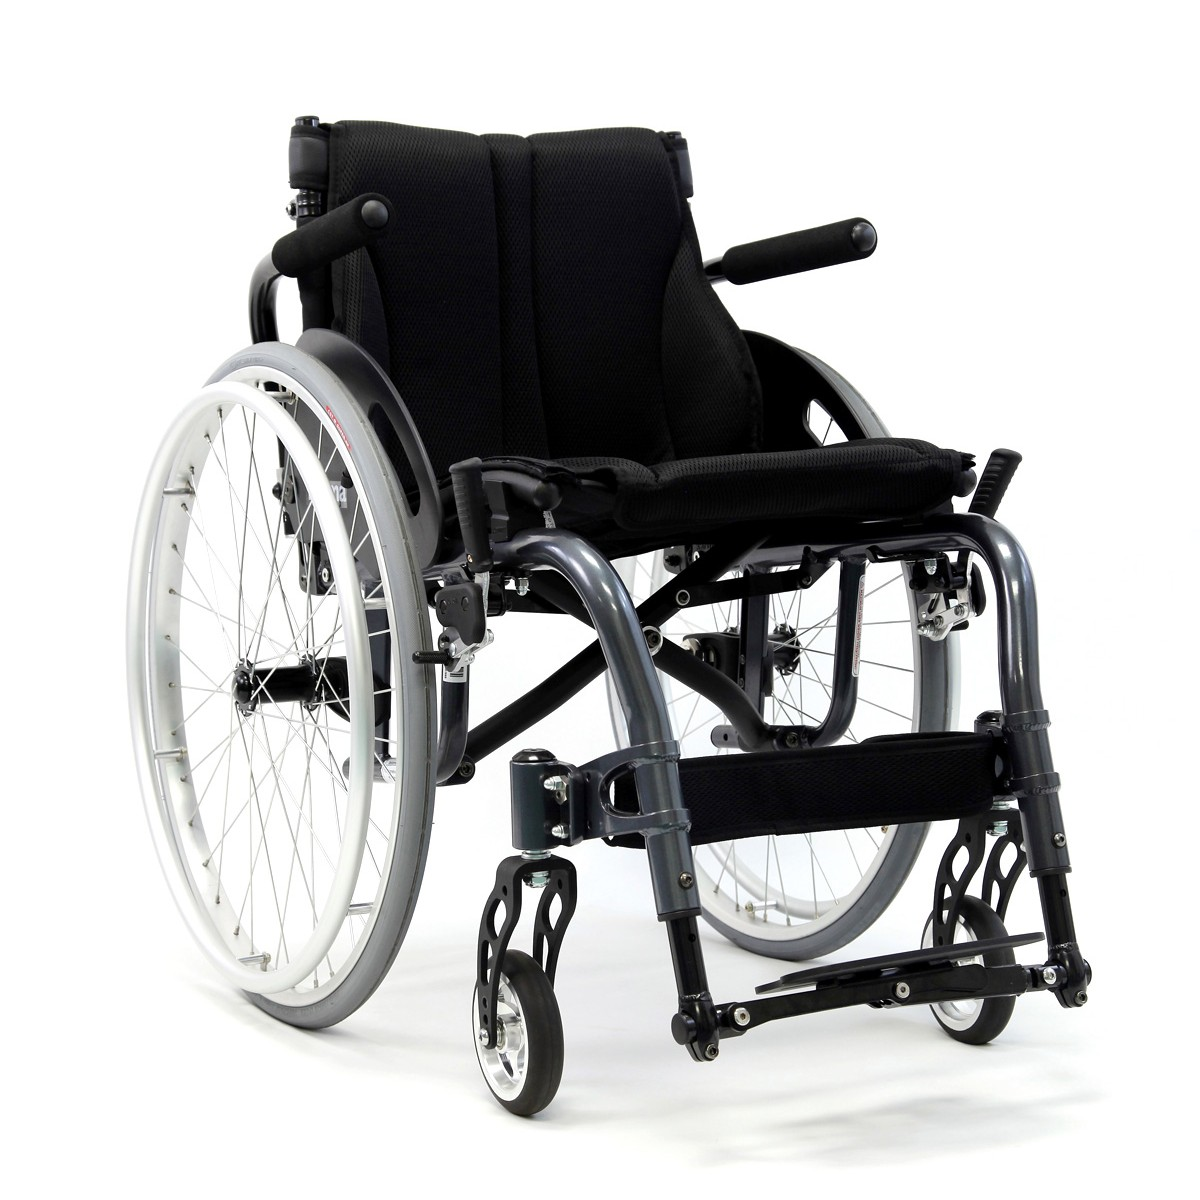 Karman S-Ergo ATX Active Ultralight Wheelchair